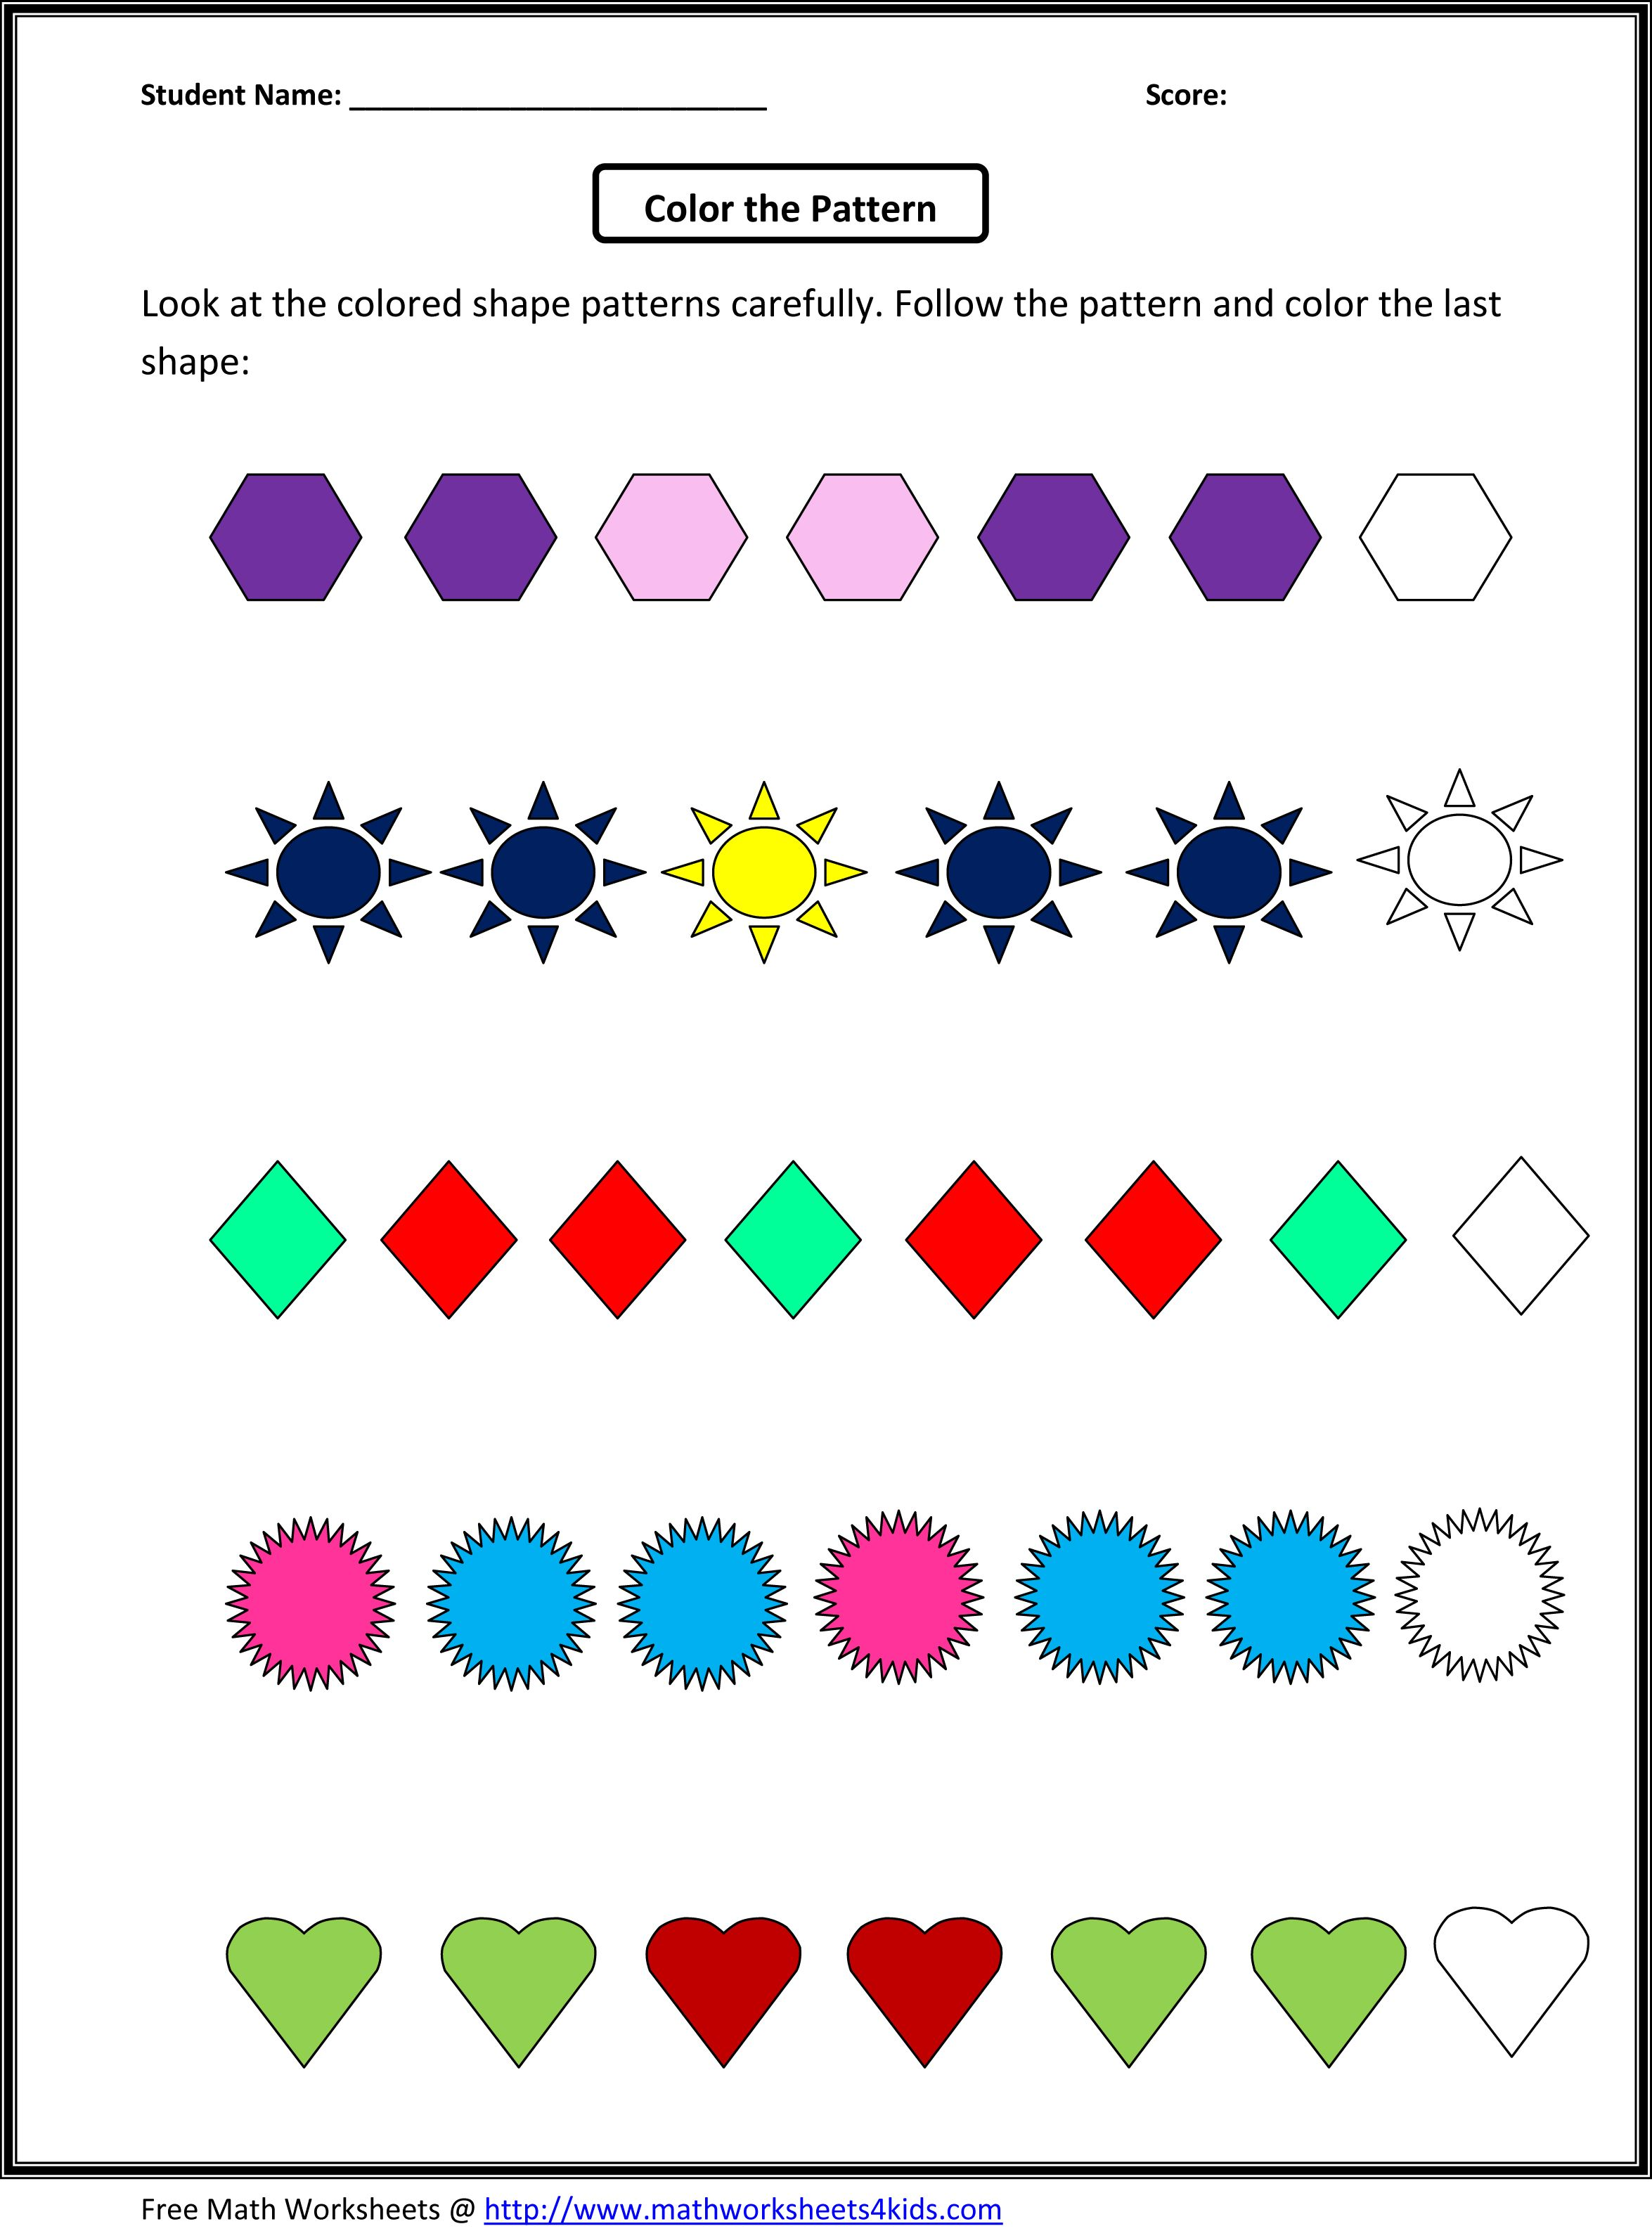 Uncategorized Maths Worksheets 4 Kids perimeter of irregular shapes kid stuff pinterest second grade math worksheets